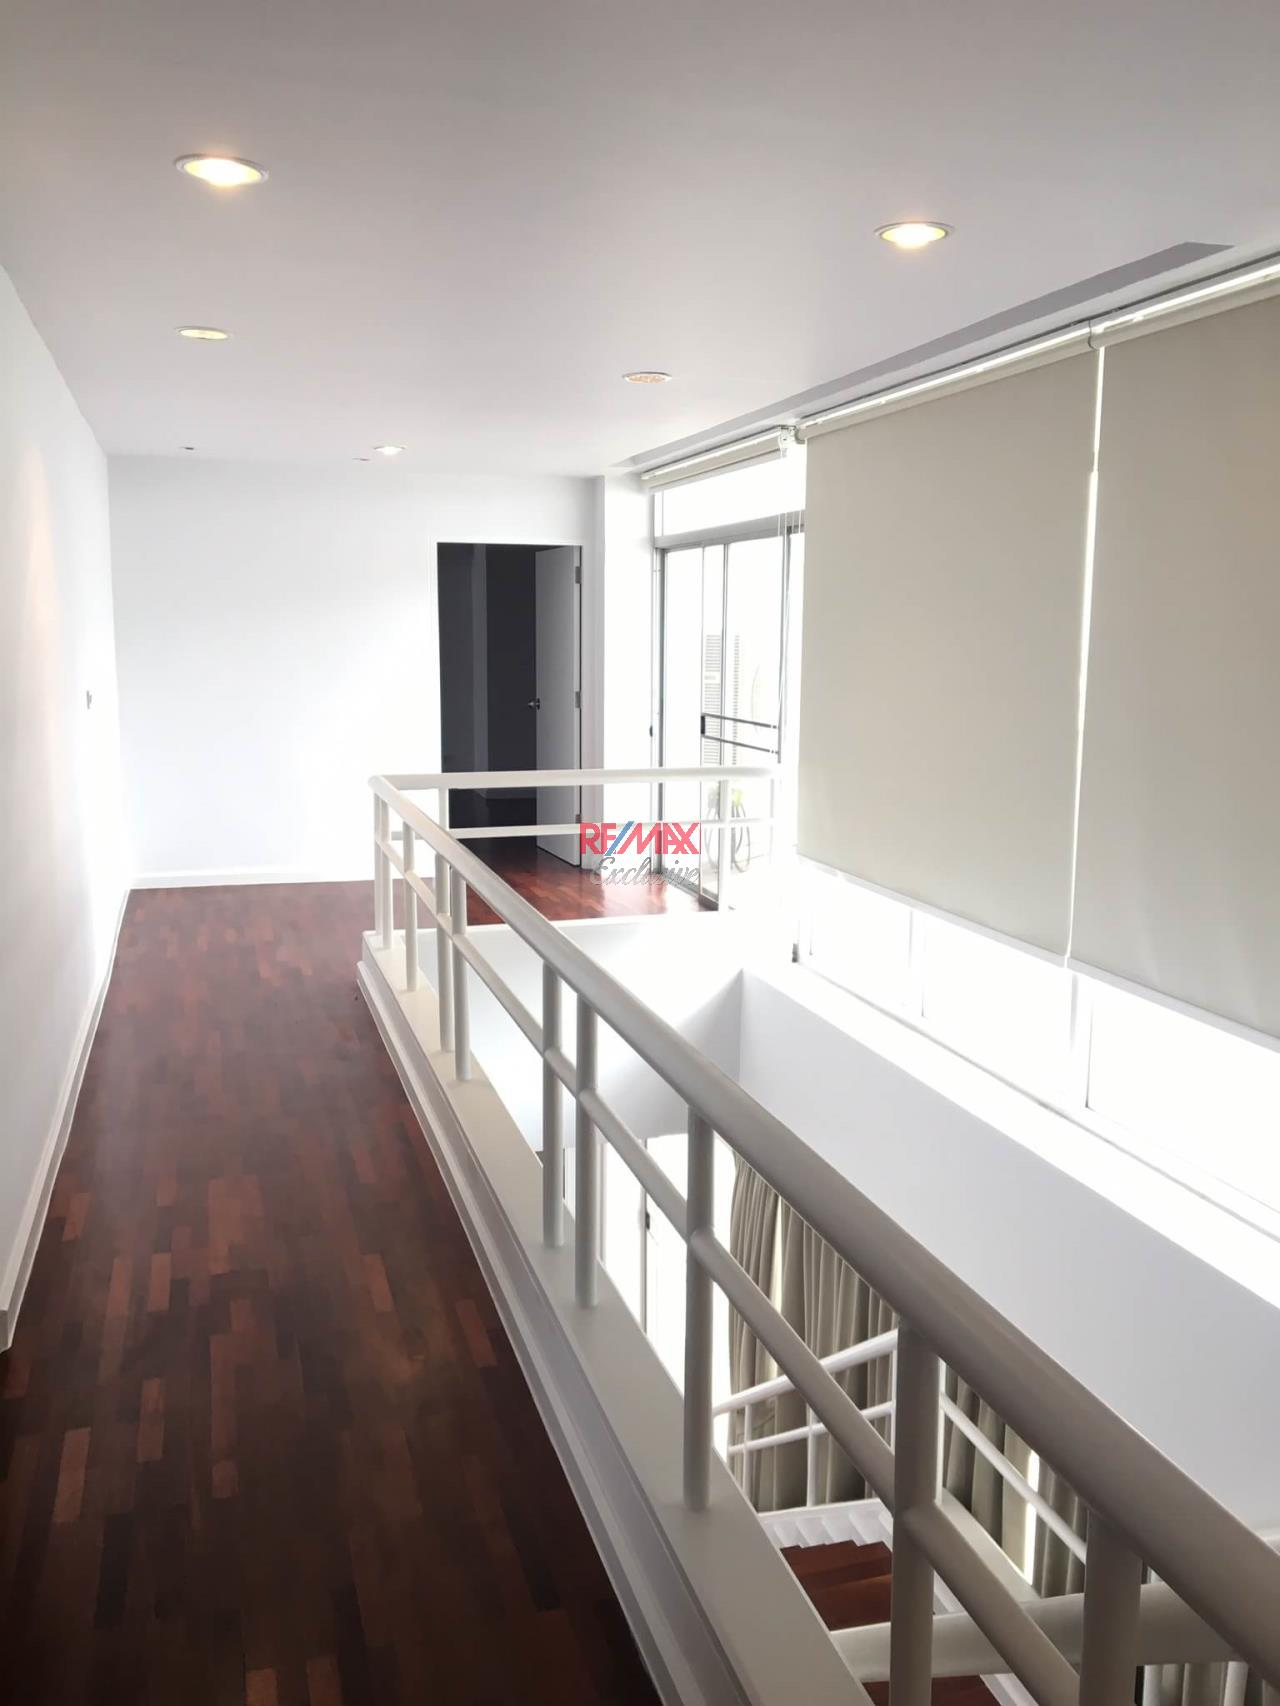 RE/MAX Exclusive Agency's Duplex Penthouse 3 Bedroom for Sale 36M 13